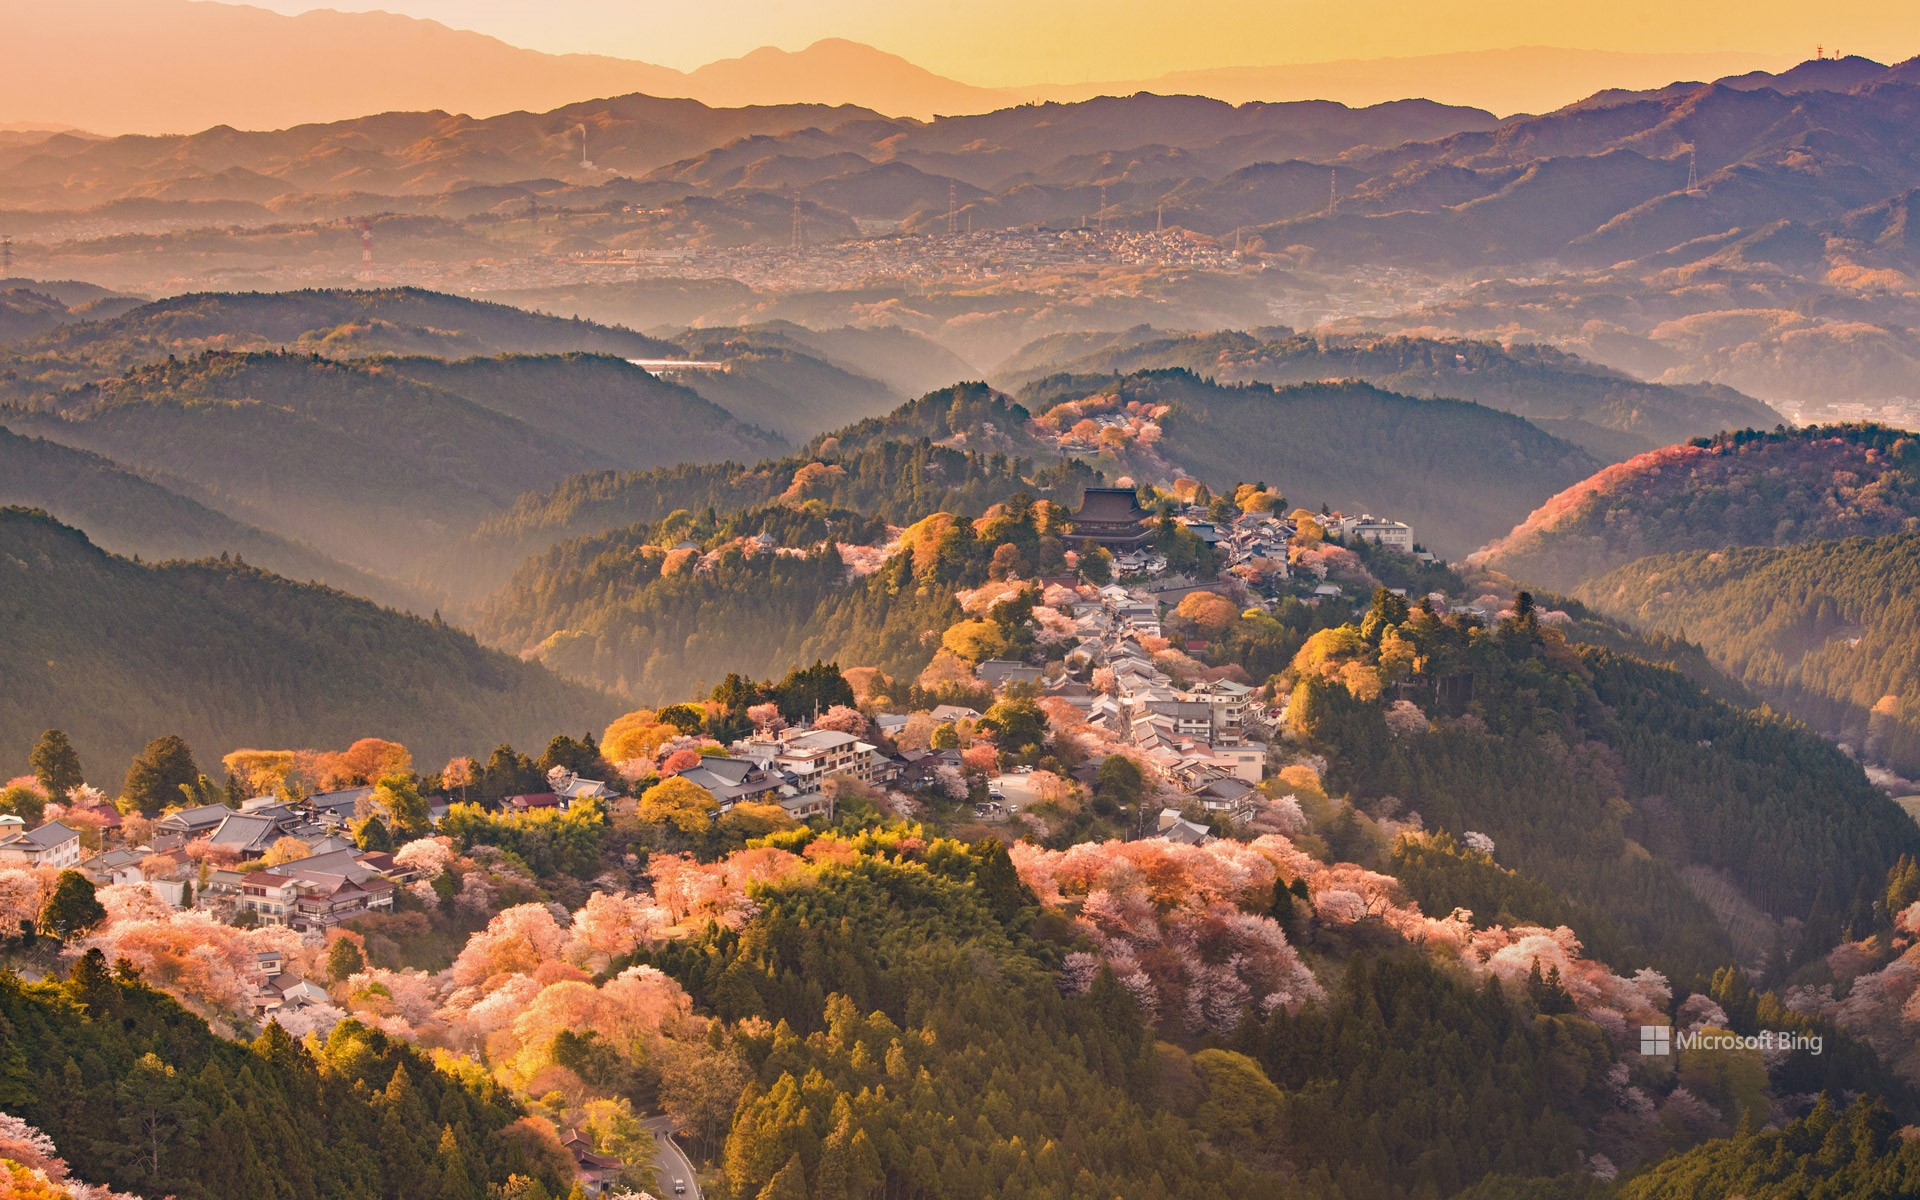 Mount Yoshino, Nara Prefecture, Japan